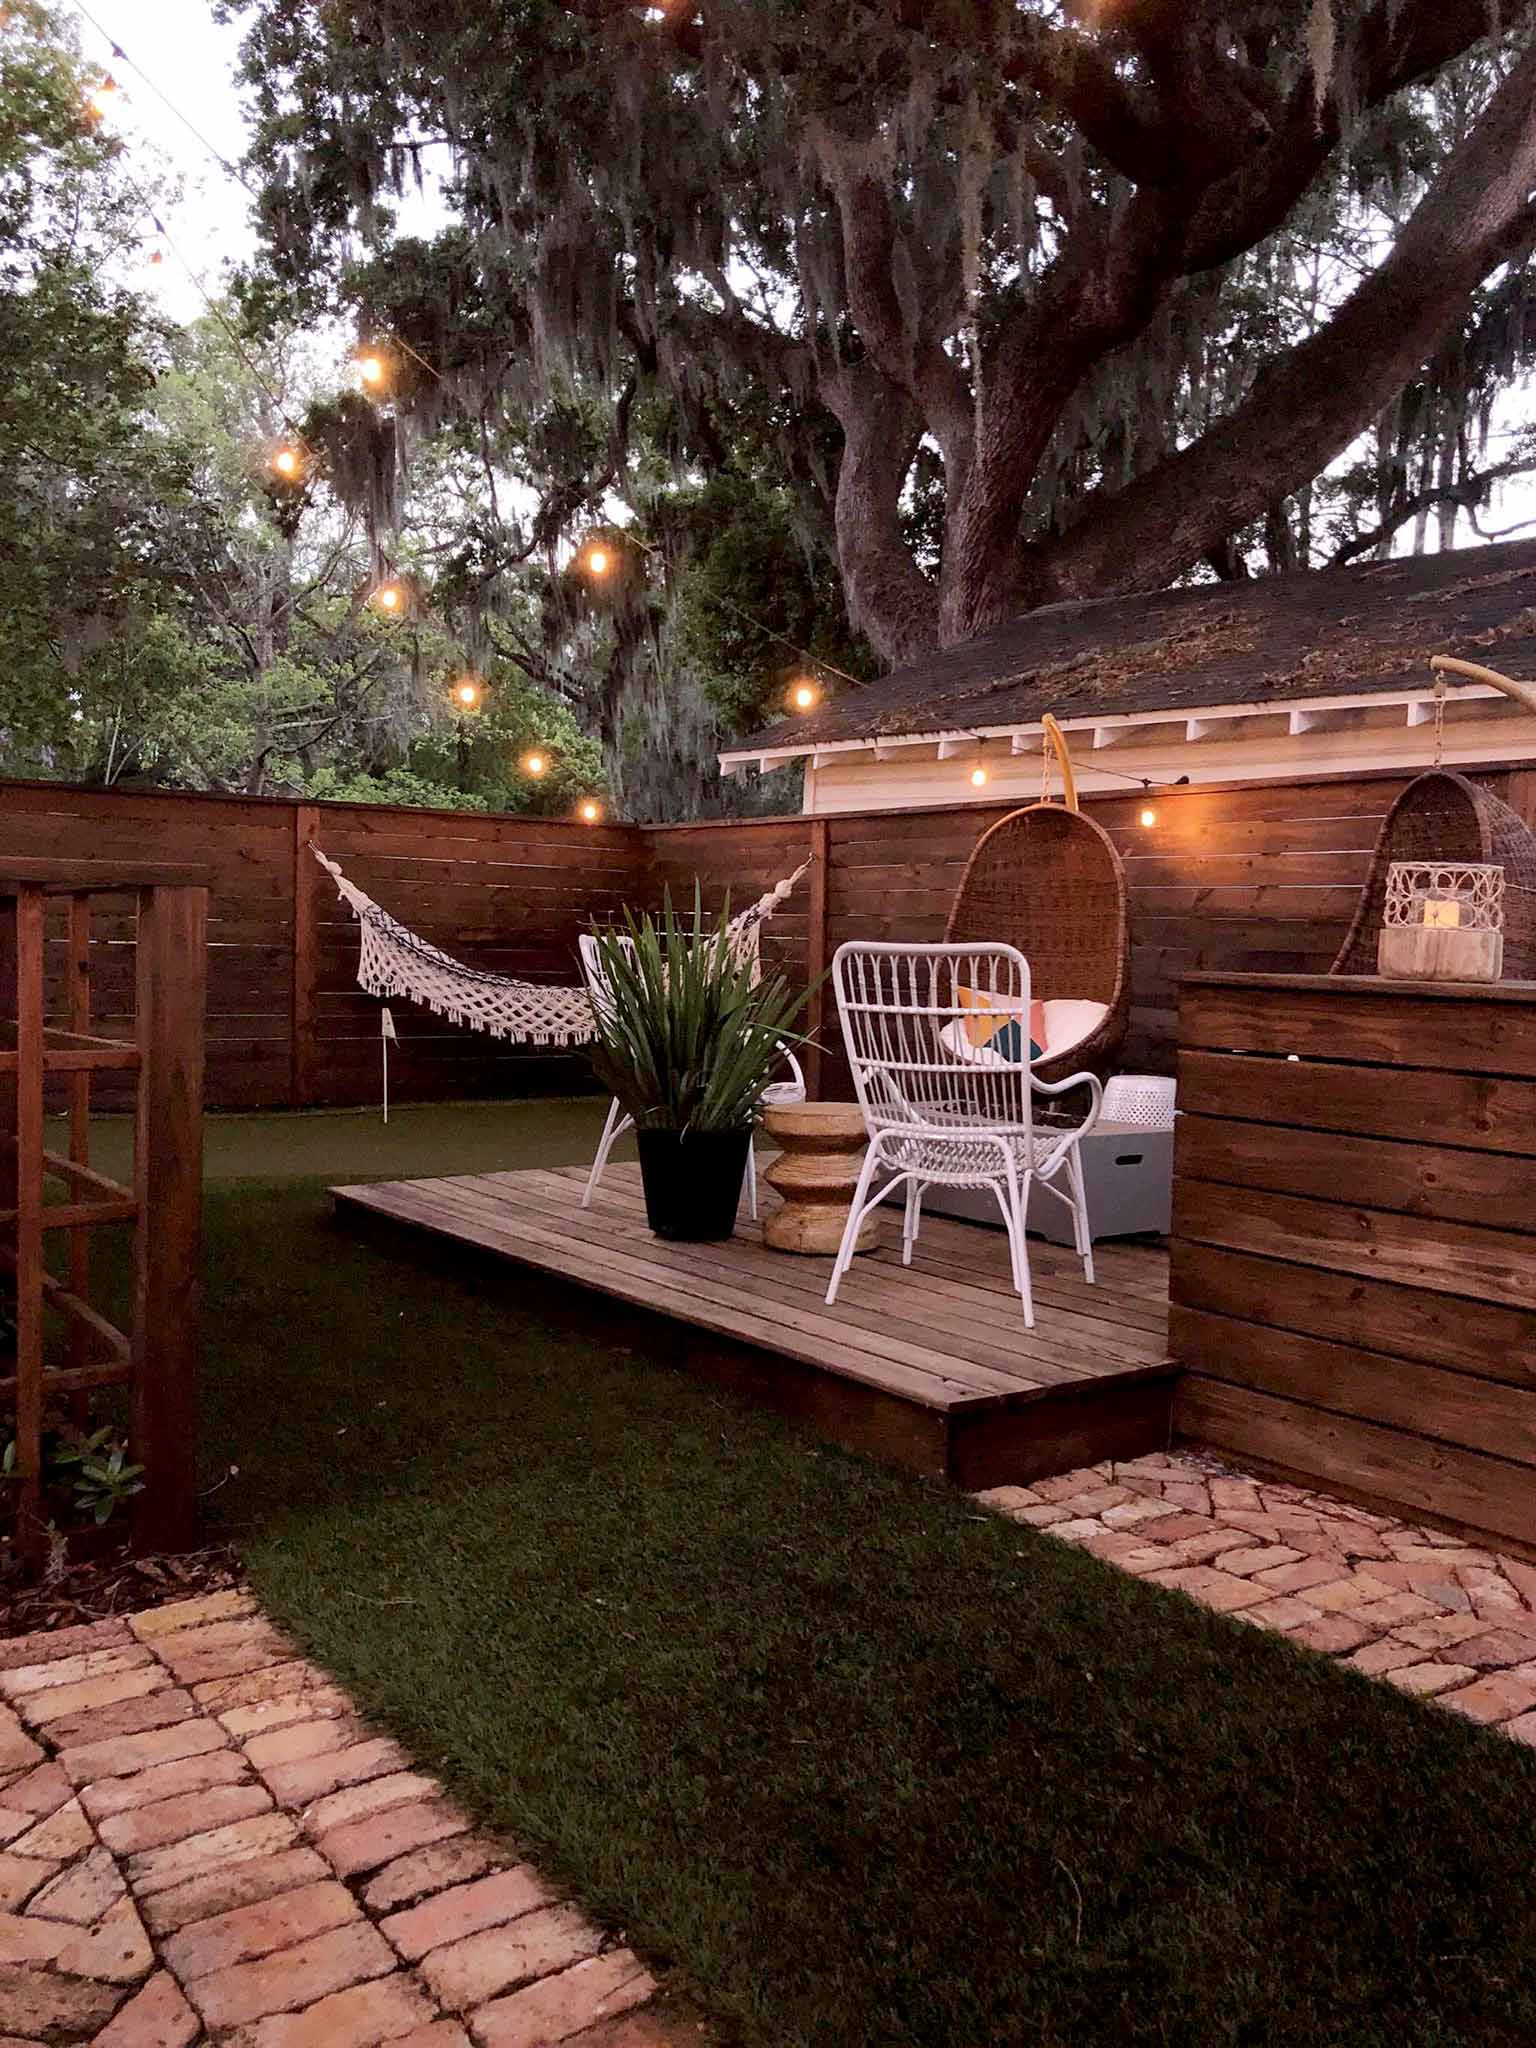 backyard deck under string lights